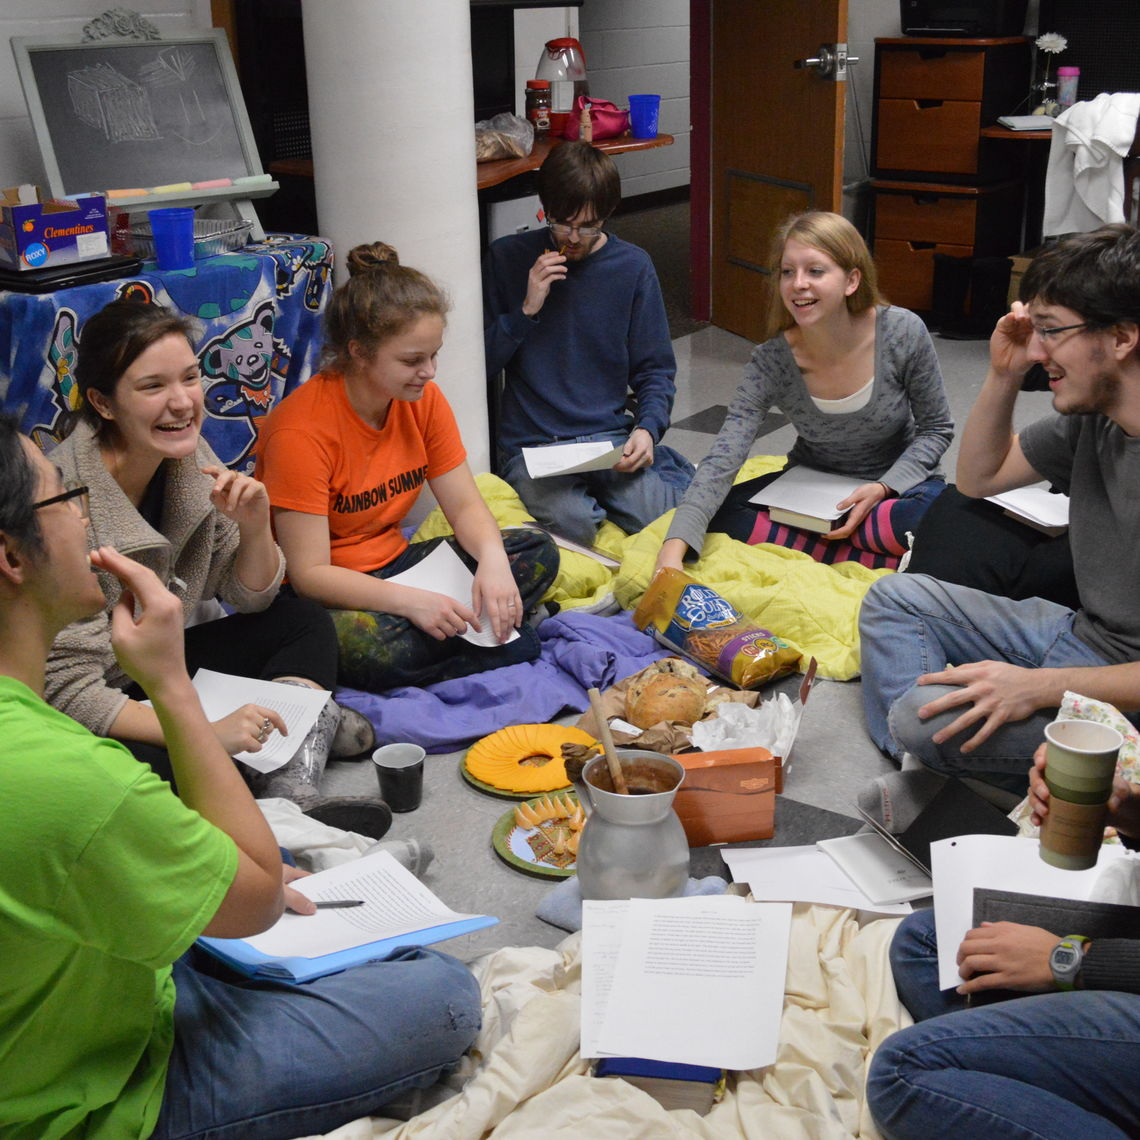 Last Brooks Community group of the semester, enjoying home made hot chocolate in the dorm